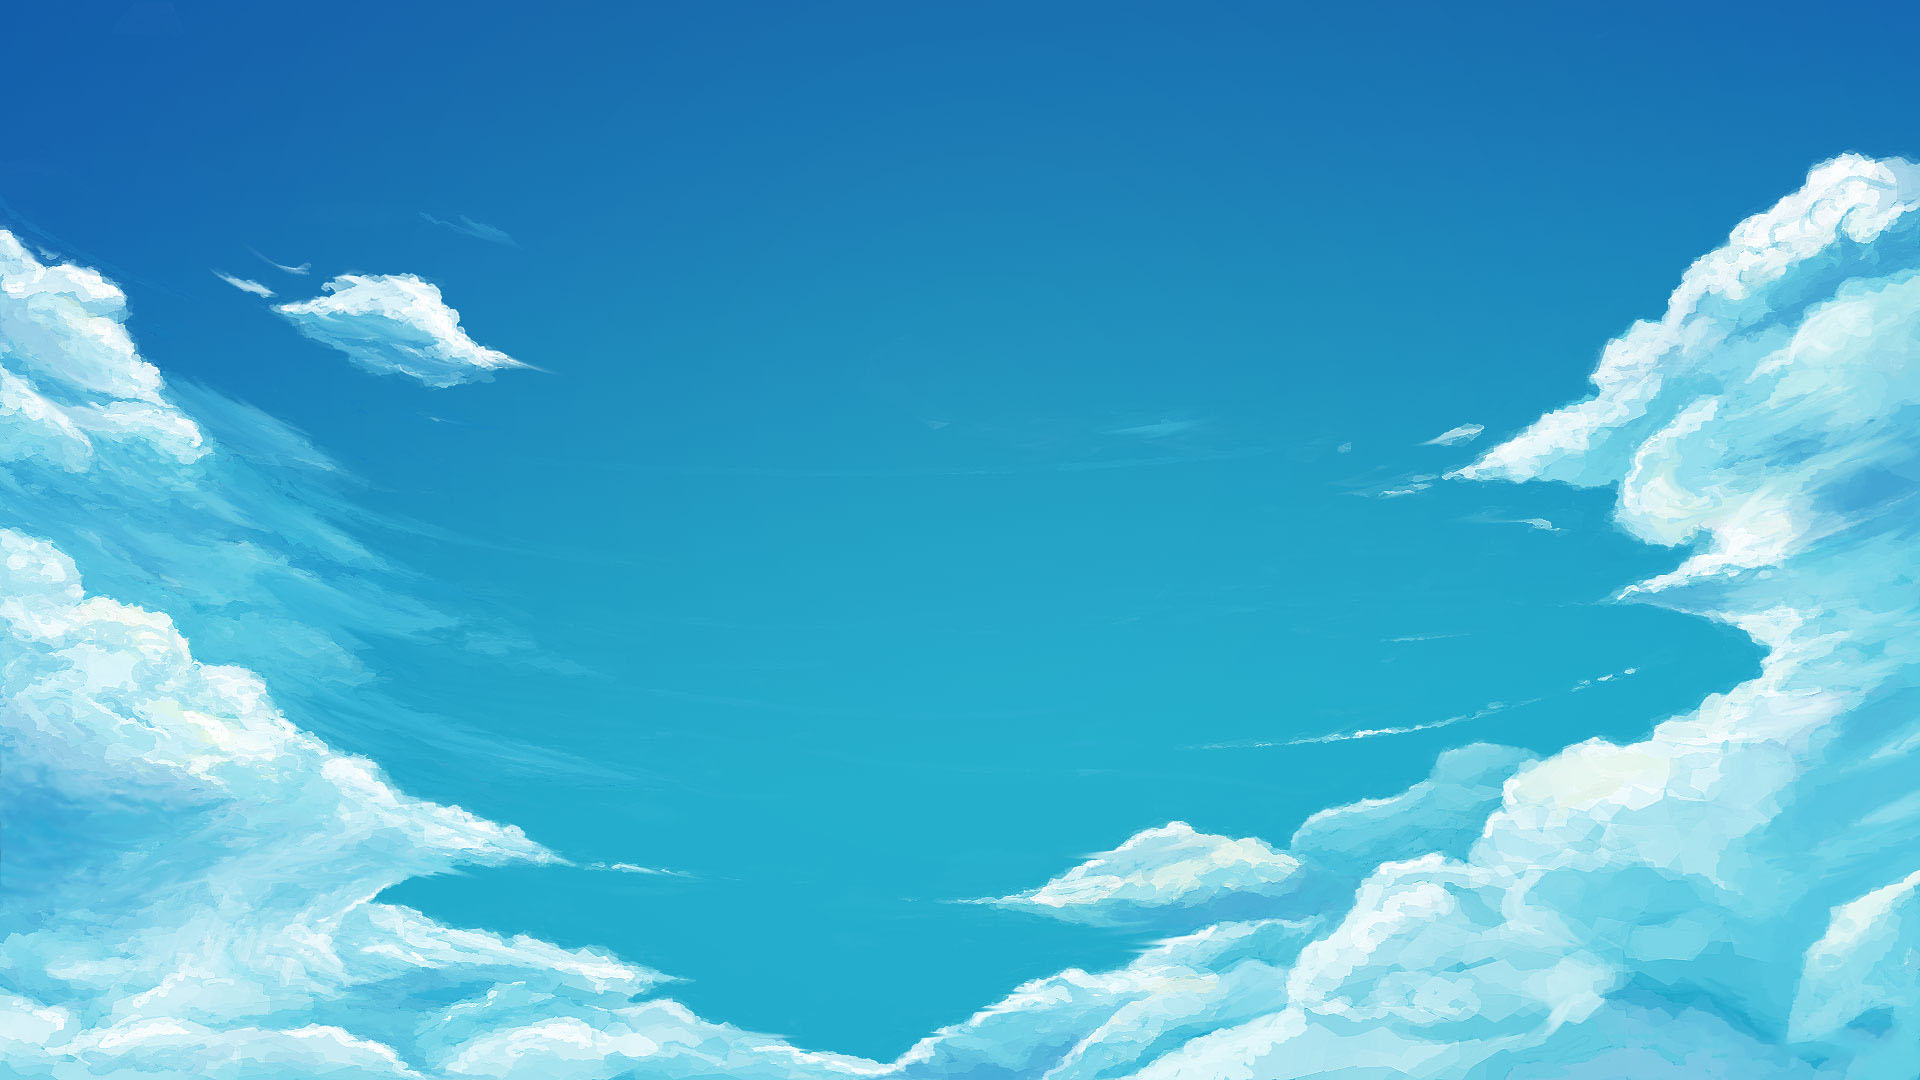 Iphone 4s Galaxy Wallpaper Animated Blue Sky Hd Wallpaper Hd Latest Wallpapers